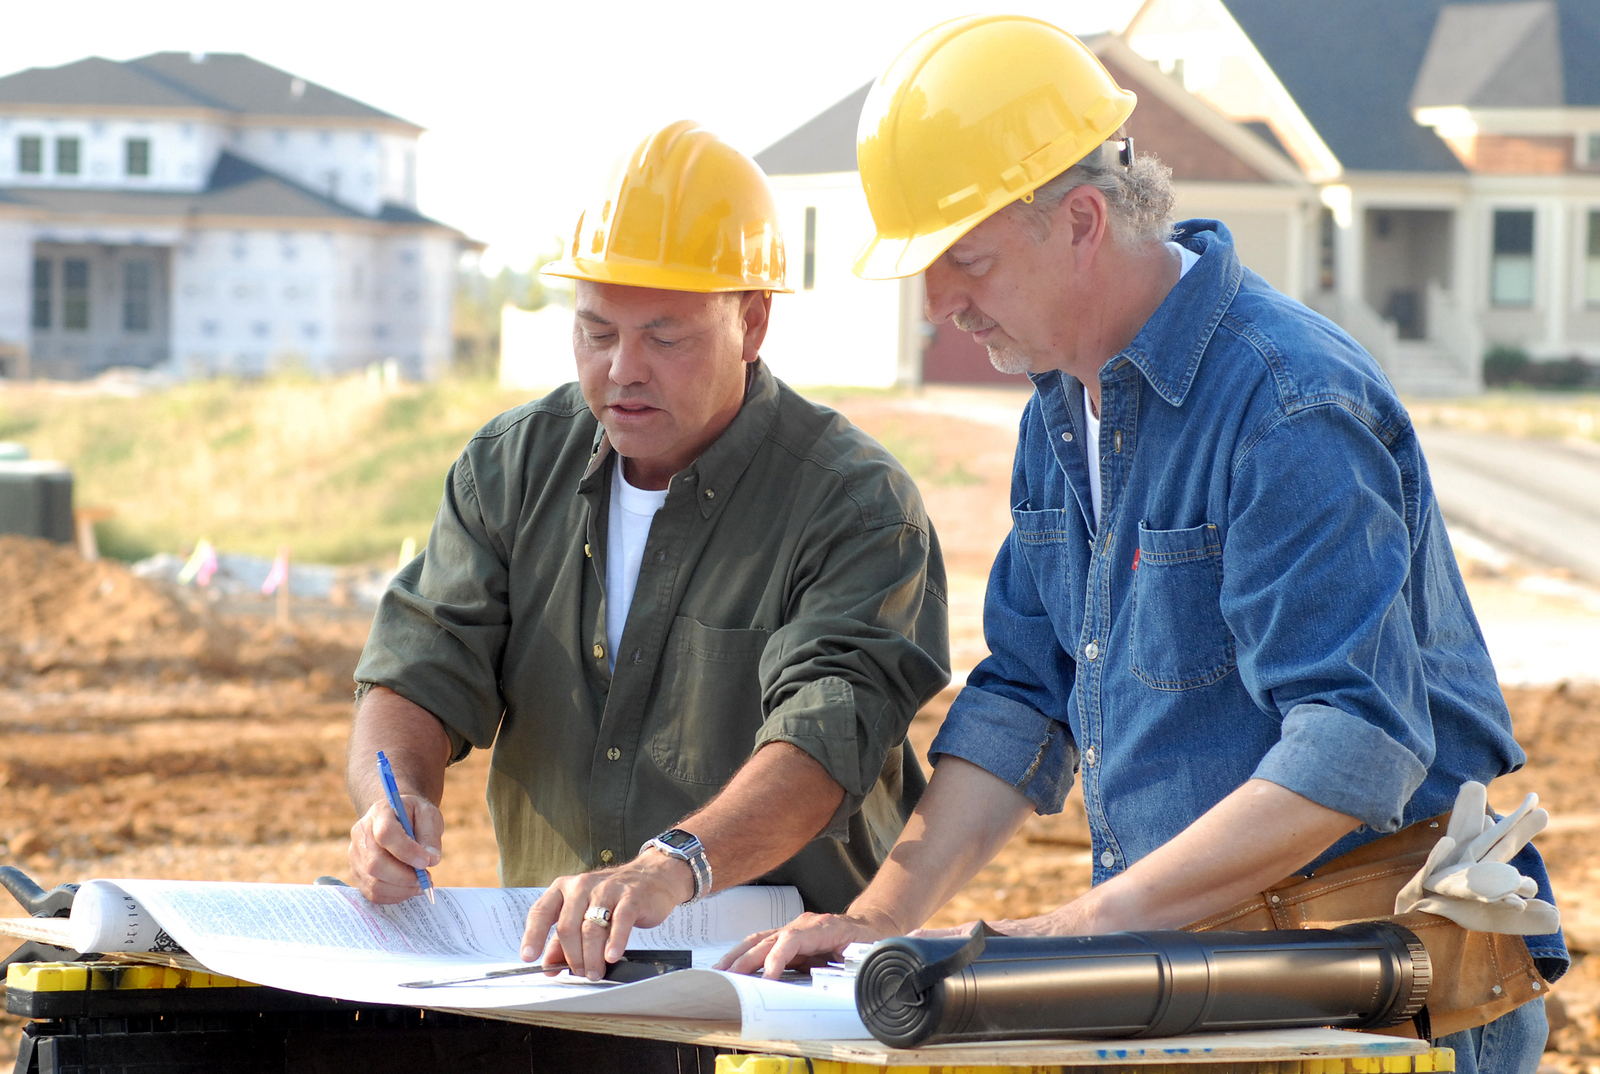 decision making for construction professionals The financial decision making certificate gives professionals the opportunity to learn the skills necessary to make the financial decisions at the core of any business professionals will discuss fundamental financial theories and practice making financial decisions that apply to any organization.